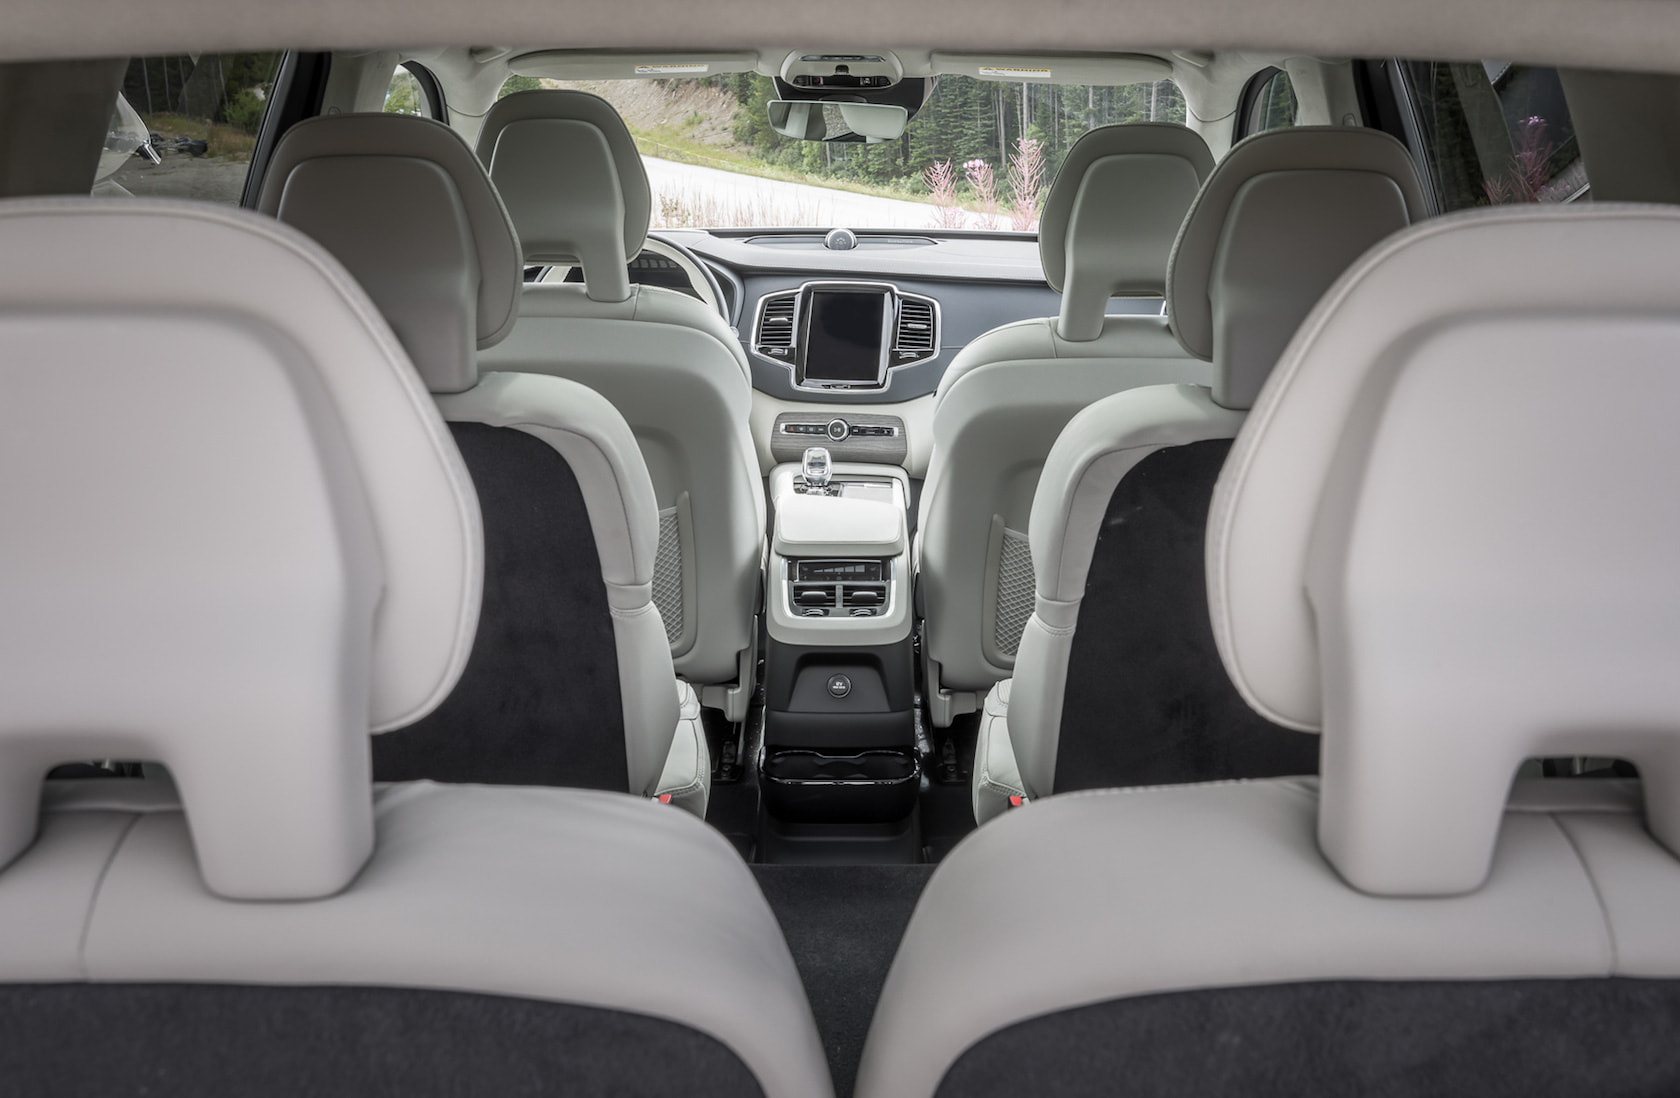 New Volvo Xc90 >> 2020 Volvo XC90 First Drive: T8 hybrid, T6, and smug ...